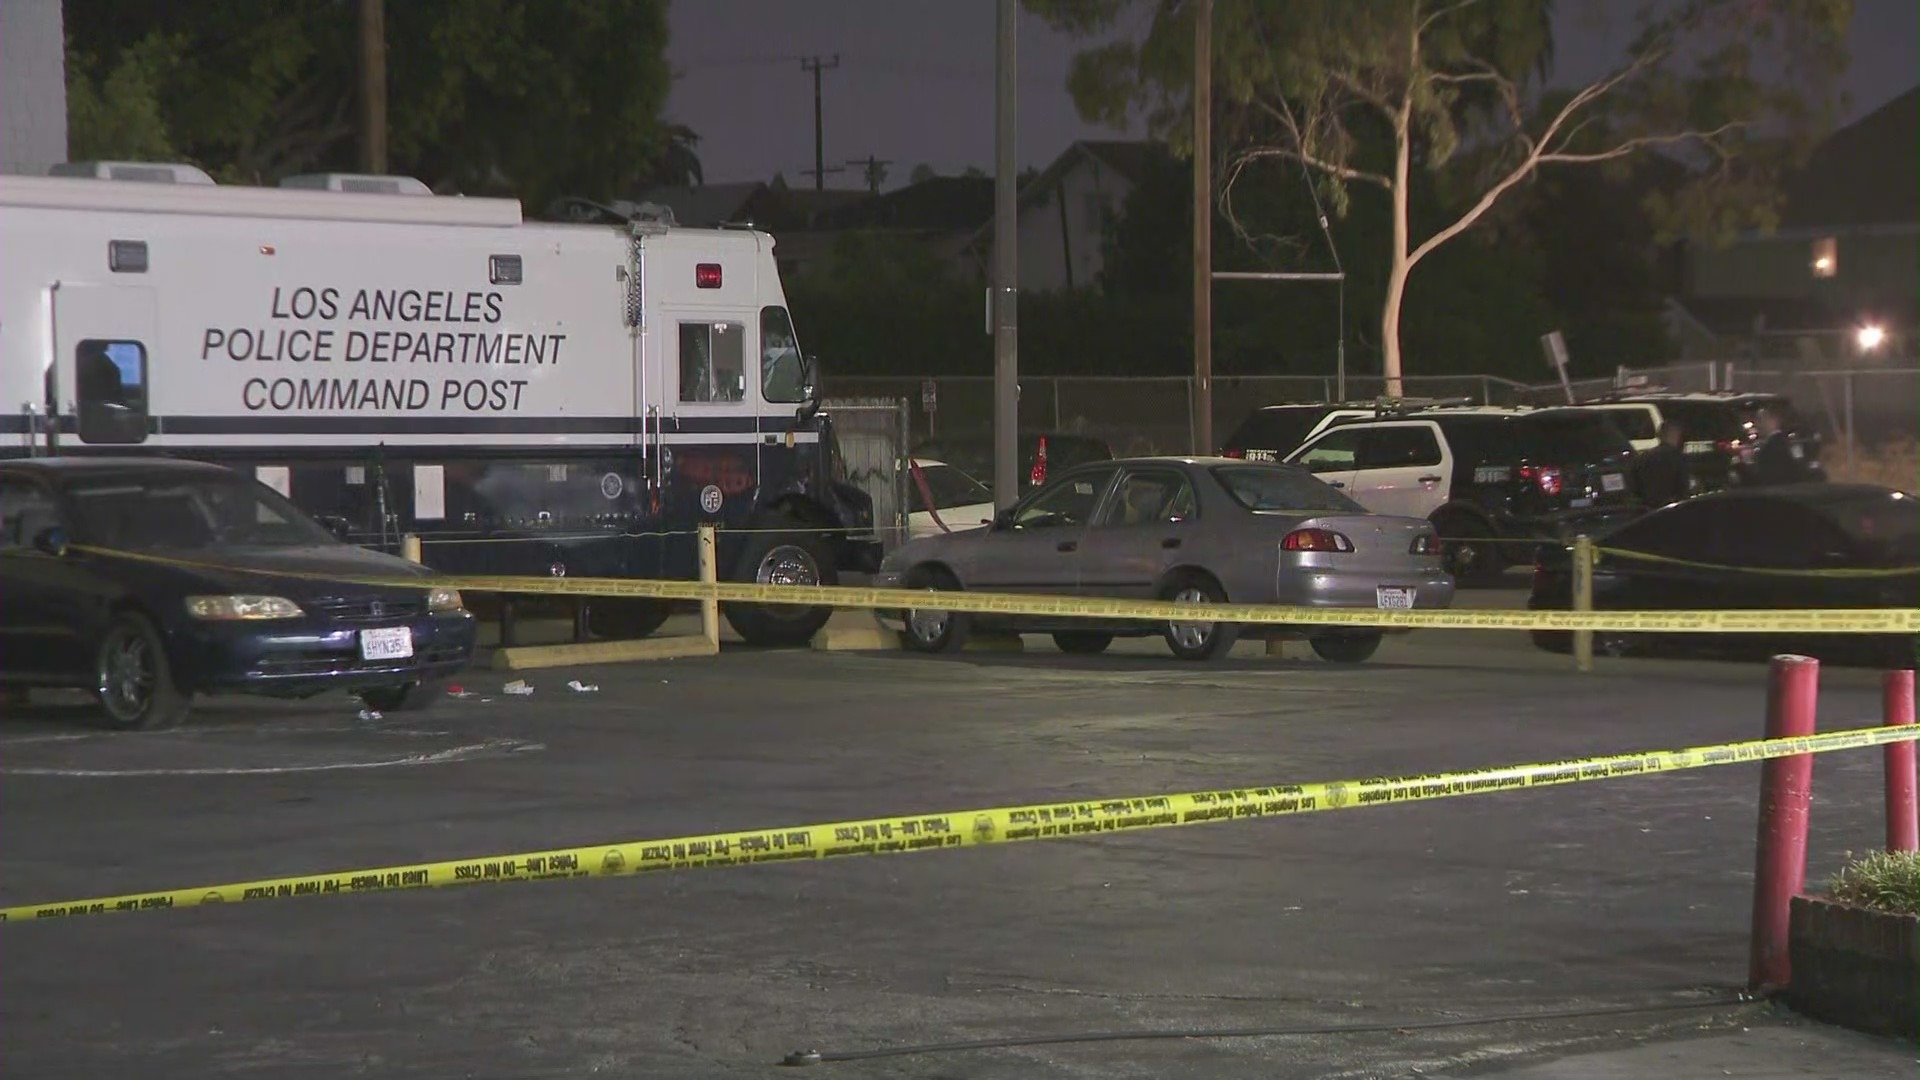 An investigation was underway on July 26, 2021, after officers opened fire on a man they say was armed with a knife. (KTLA)